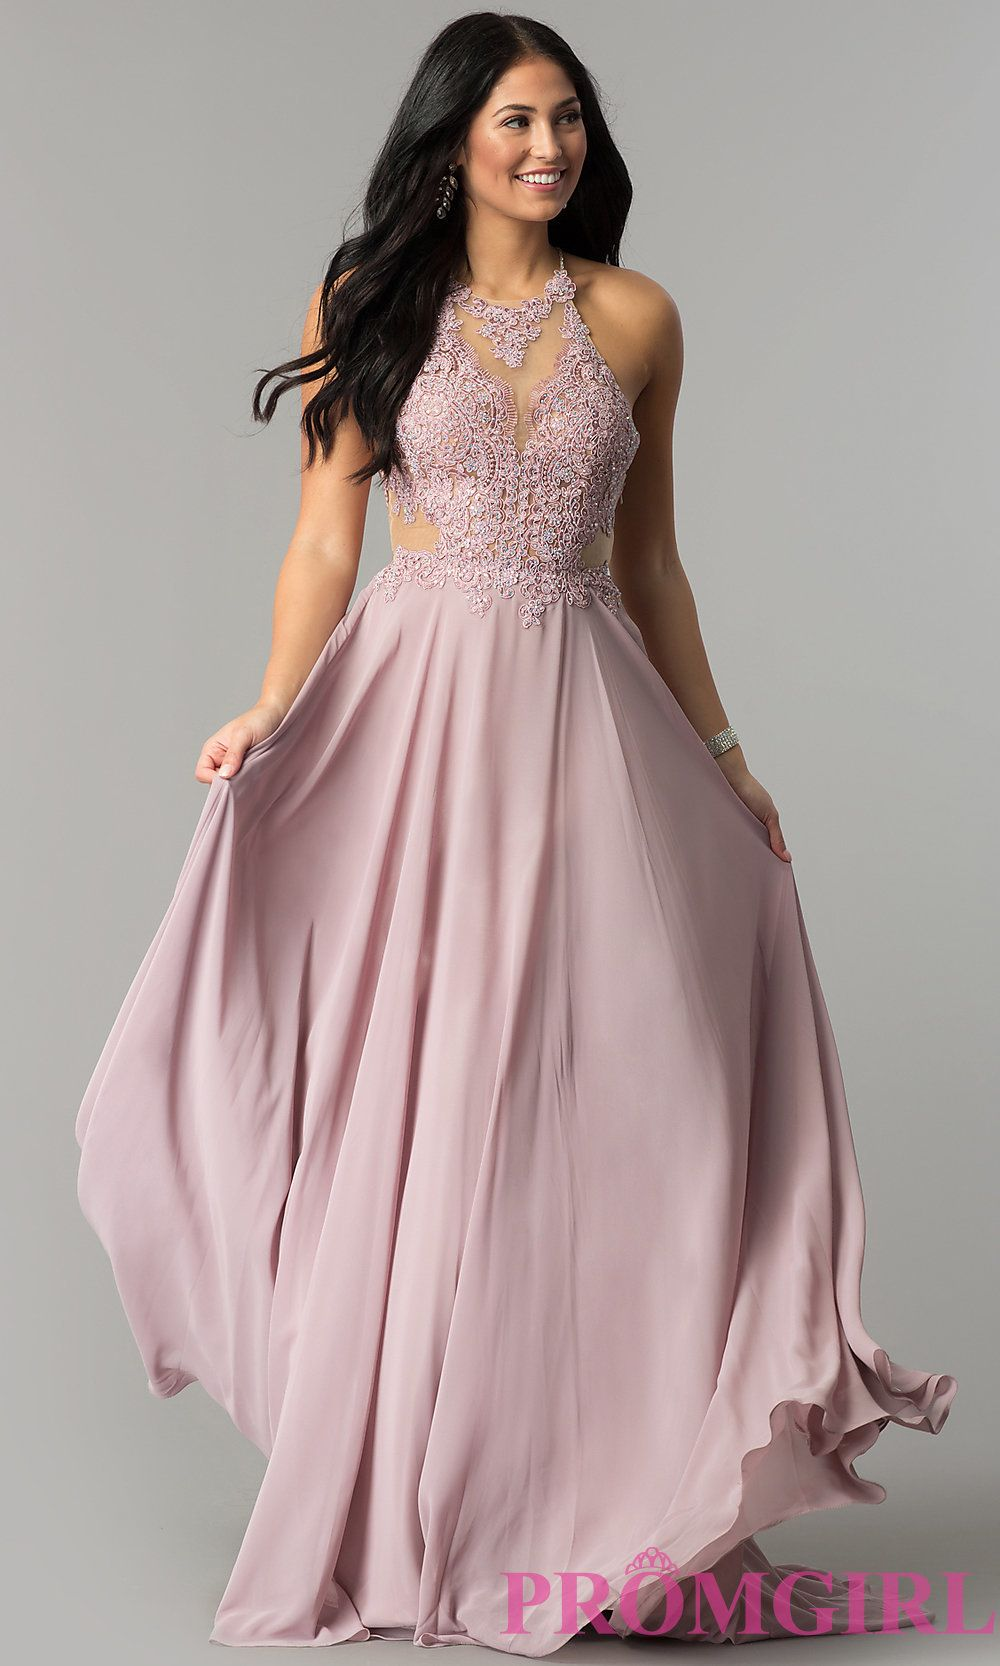 54eebc83068 Promgirl Long Prom Dress With Lace Up Back | Huston Fislar Photography